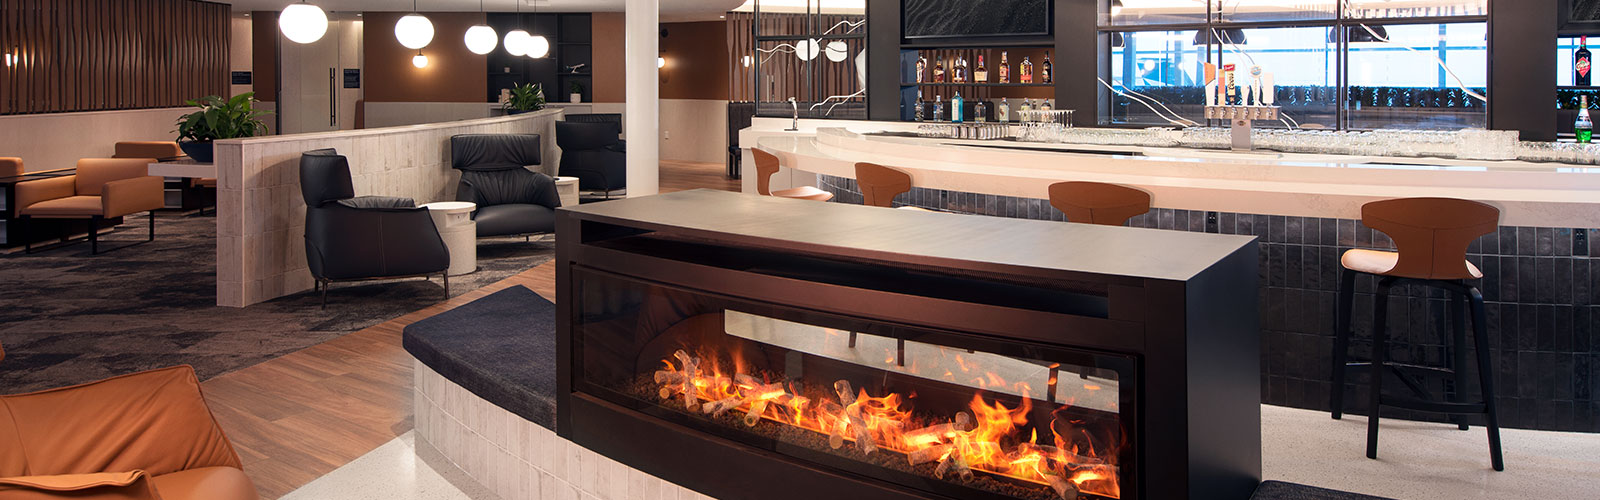 A rounded fireplace in front of the bright rounded bar